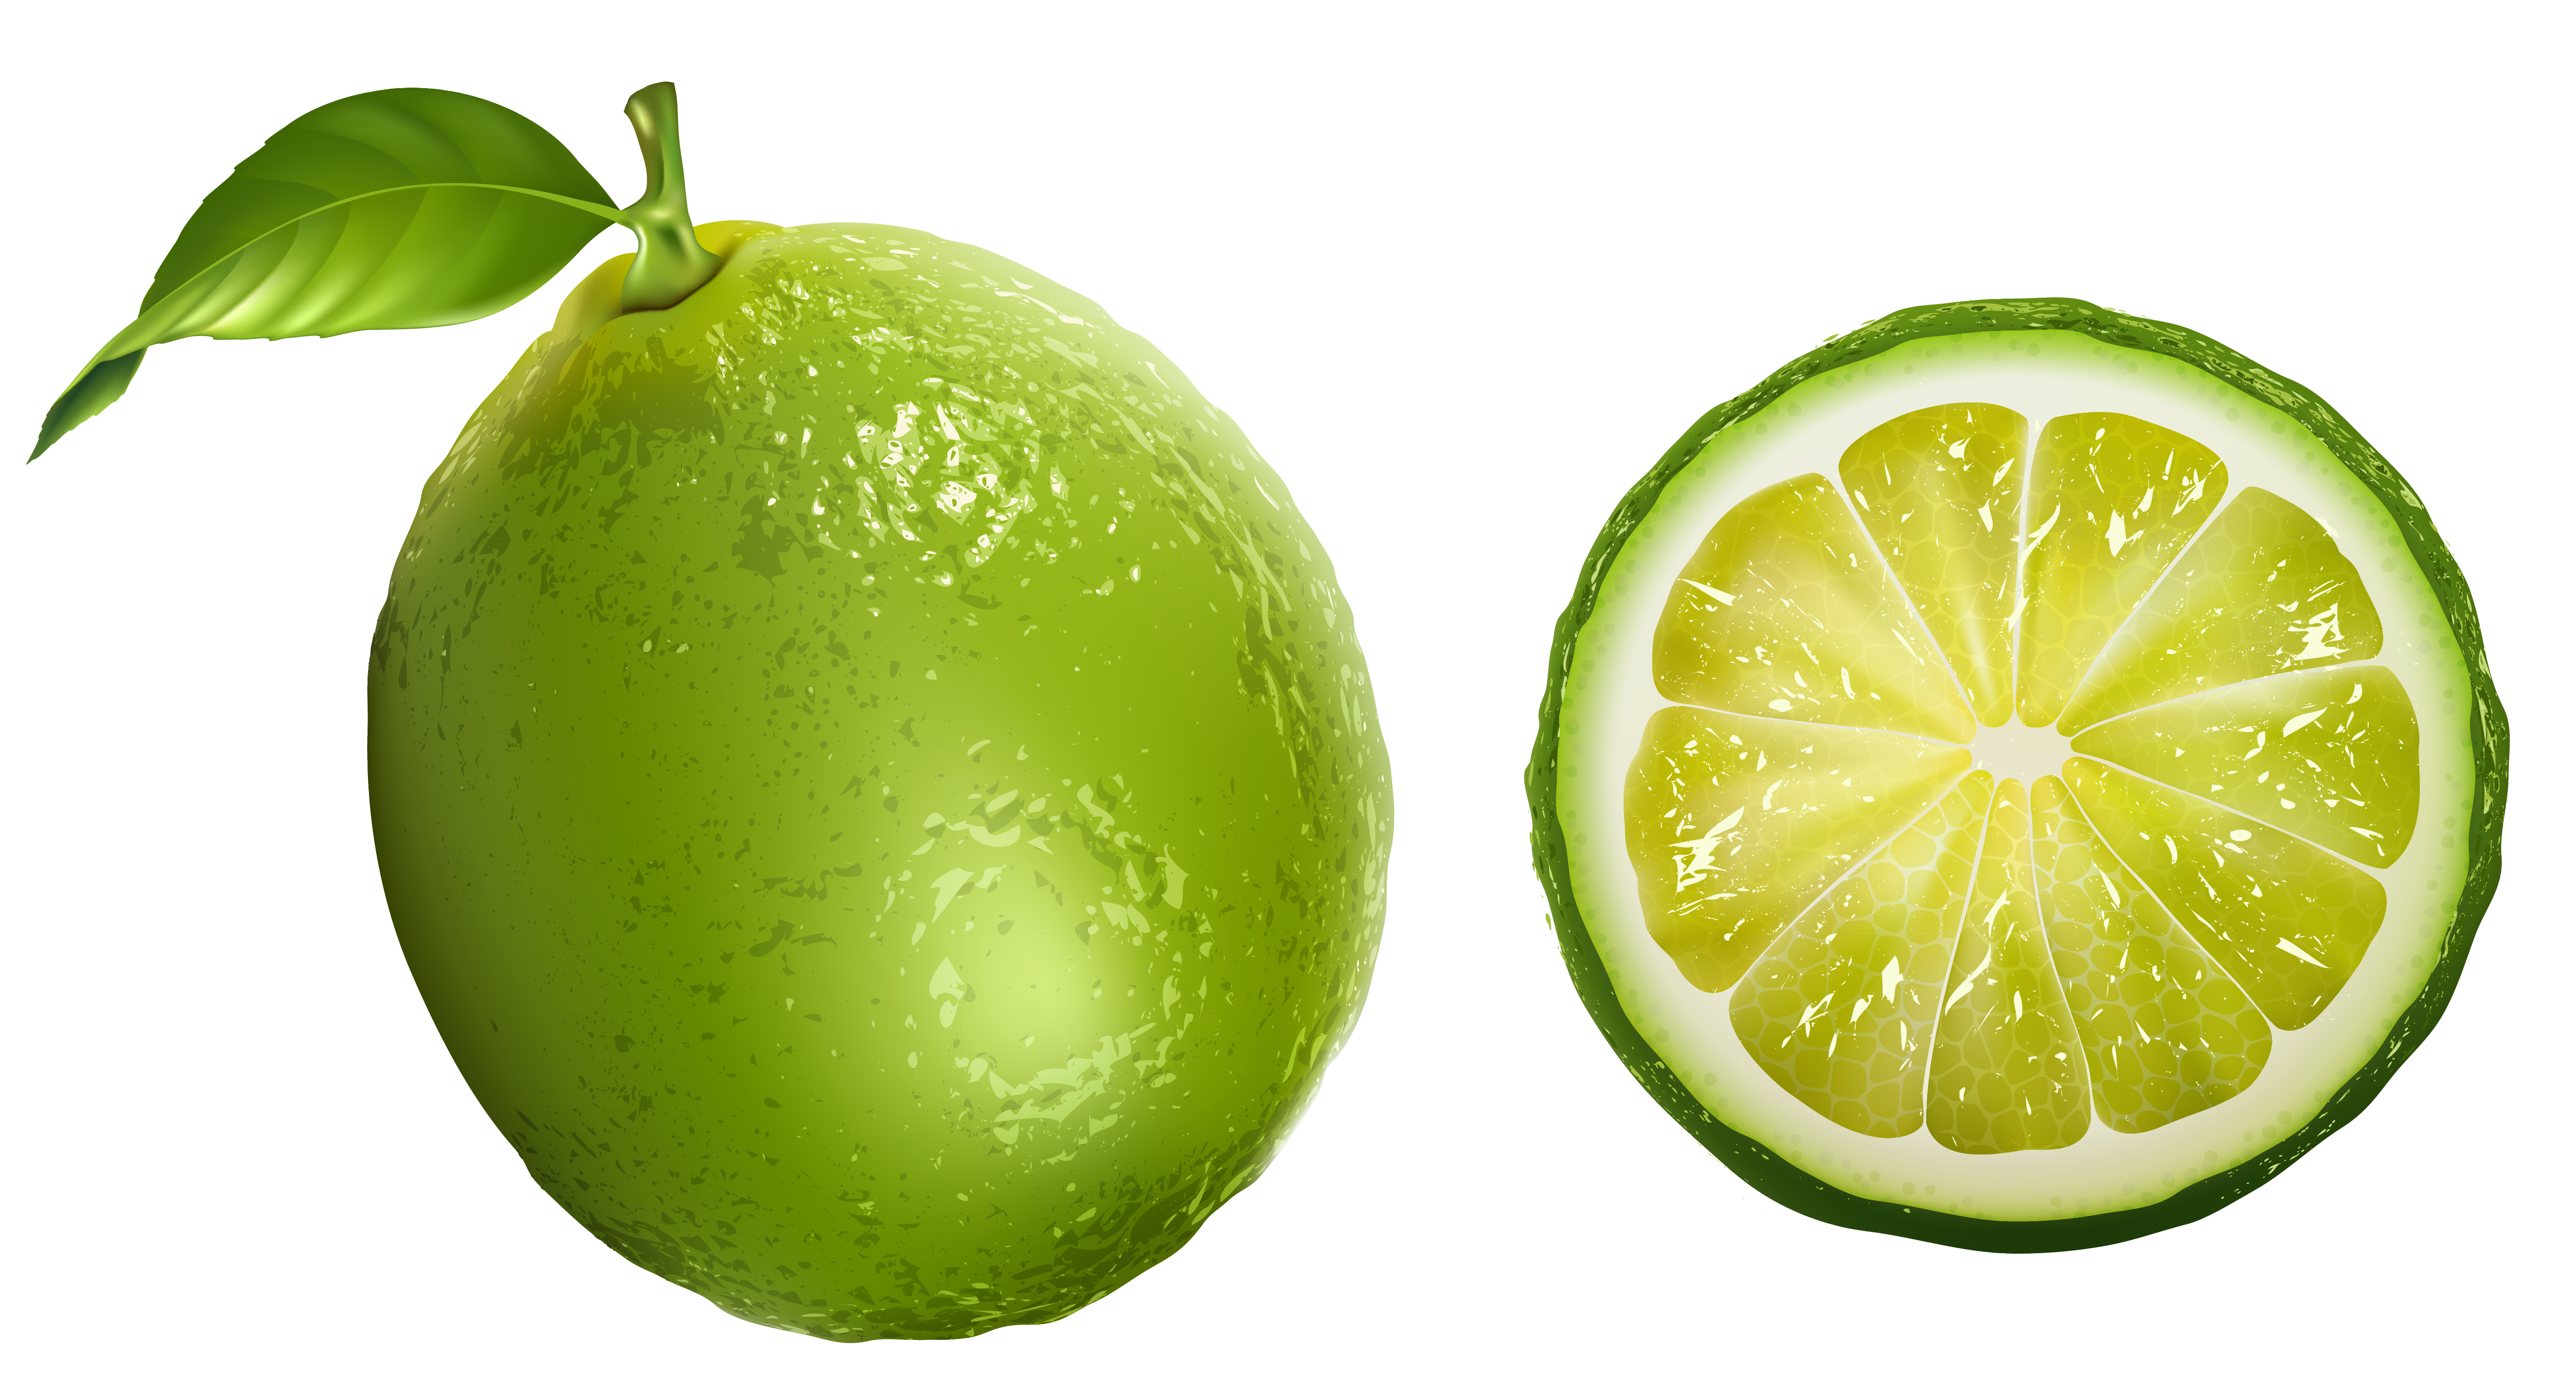 Fruits transparent lime. Png clipart picture gallery